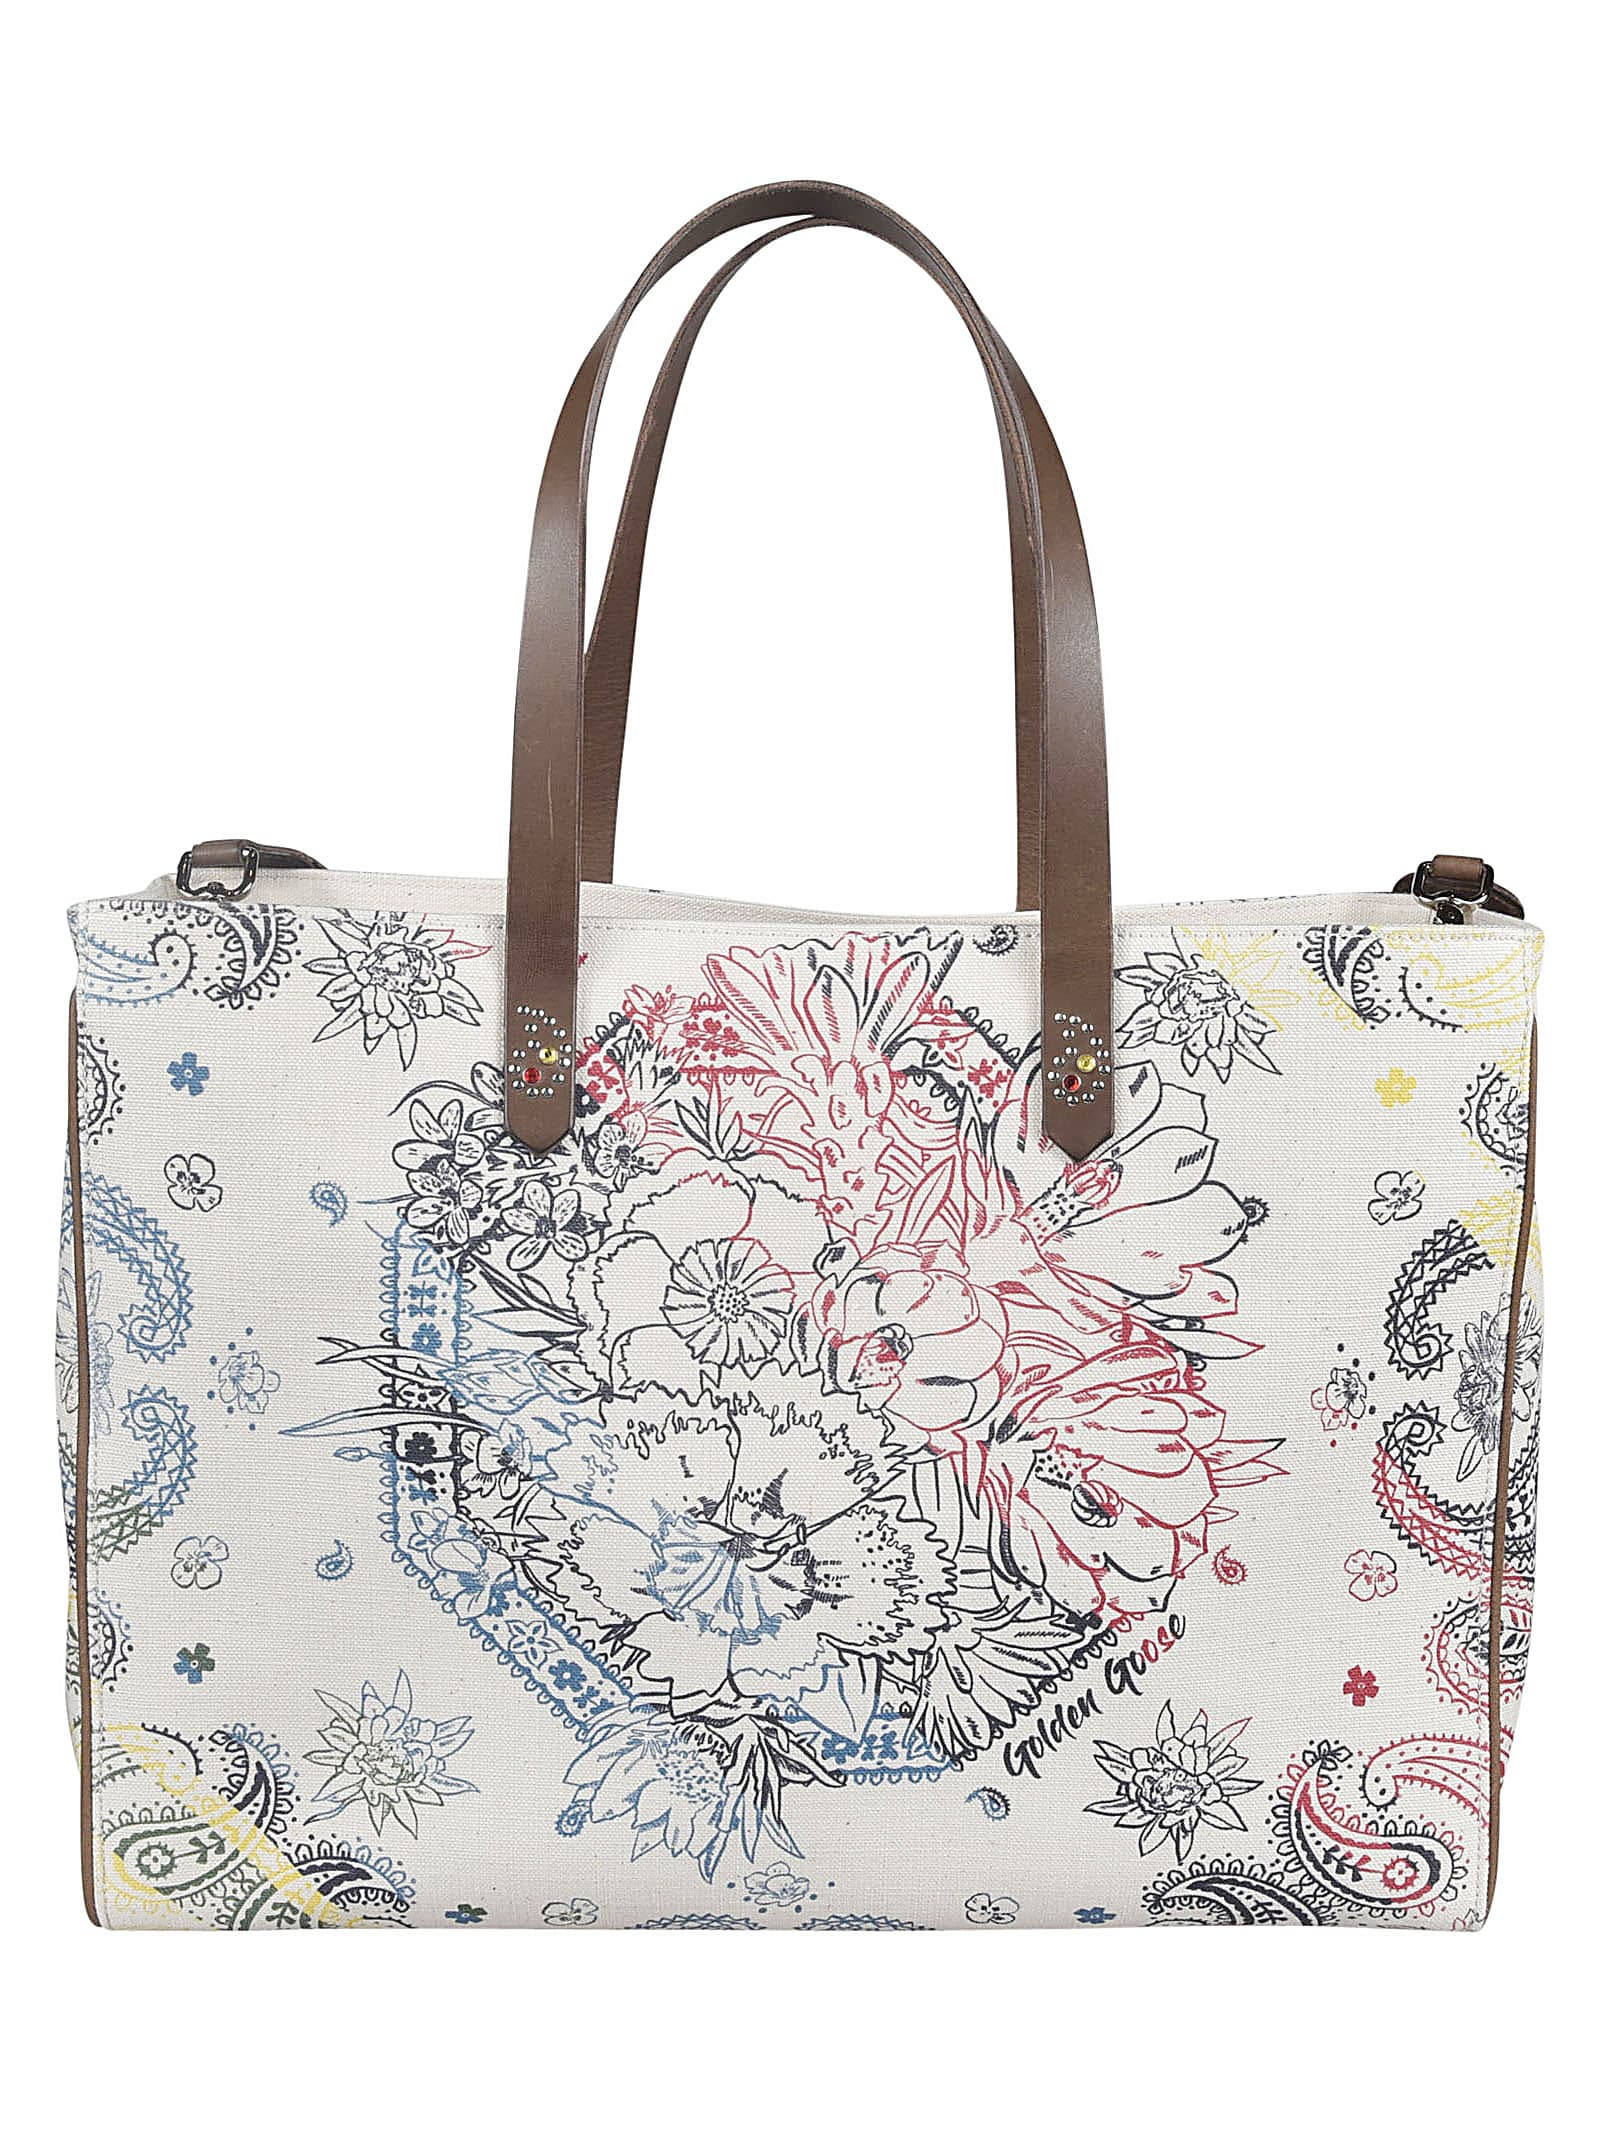 Golden Goose Floral Printed Shopper Bag